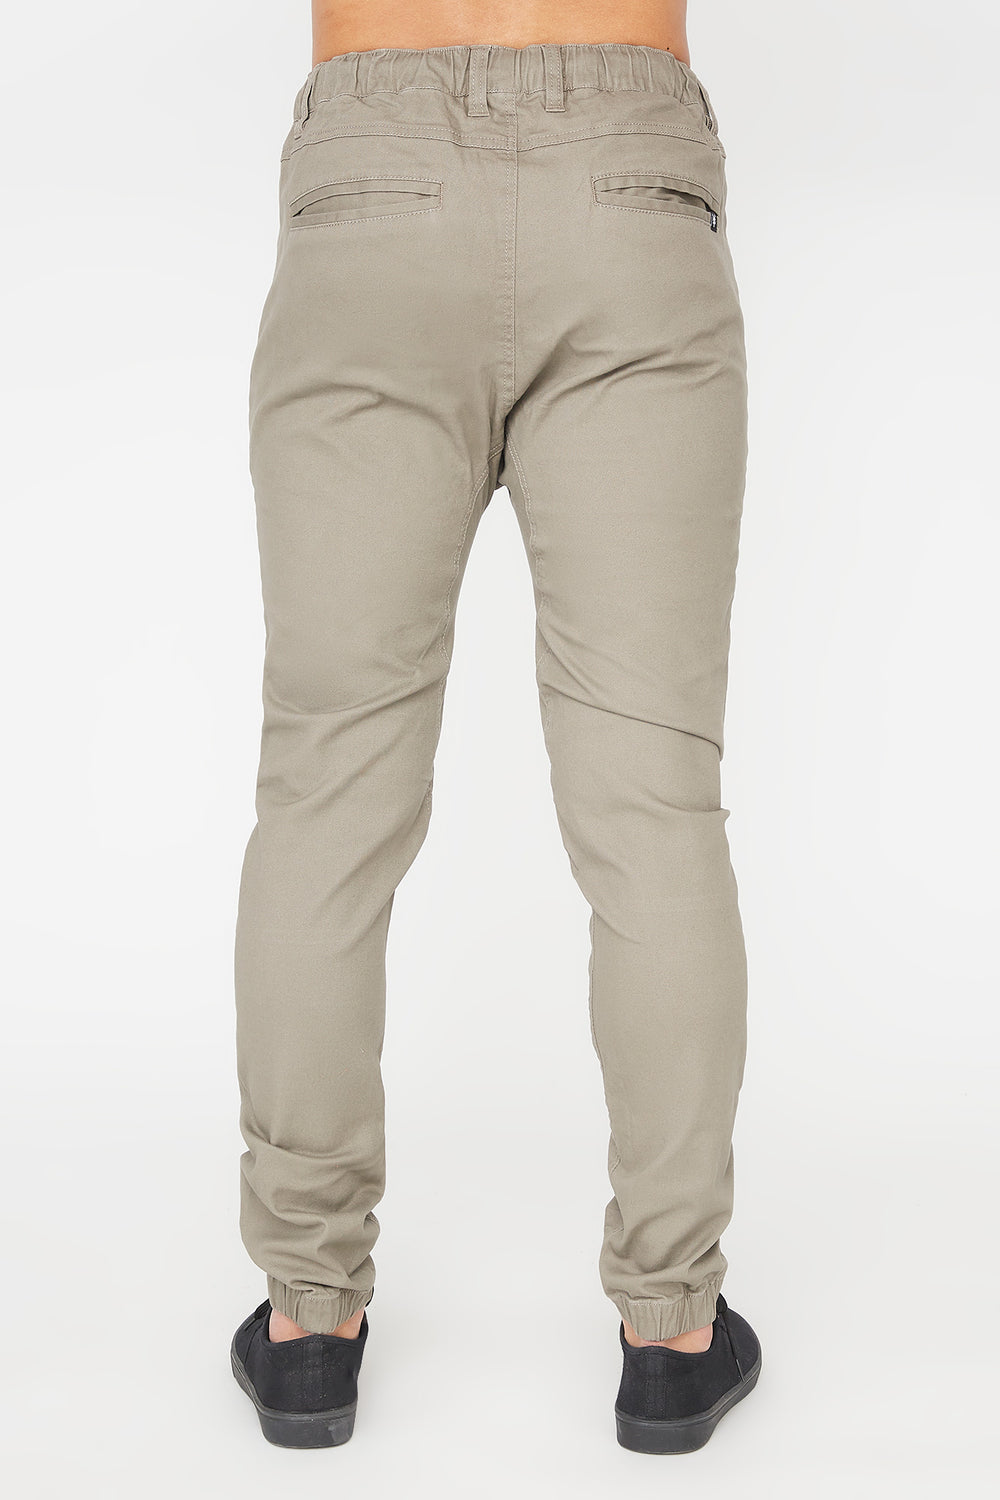 Zoo York Mens Solid Zip Jogger Mushroom